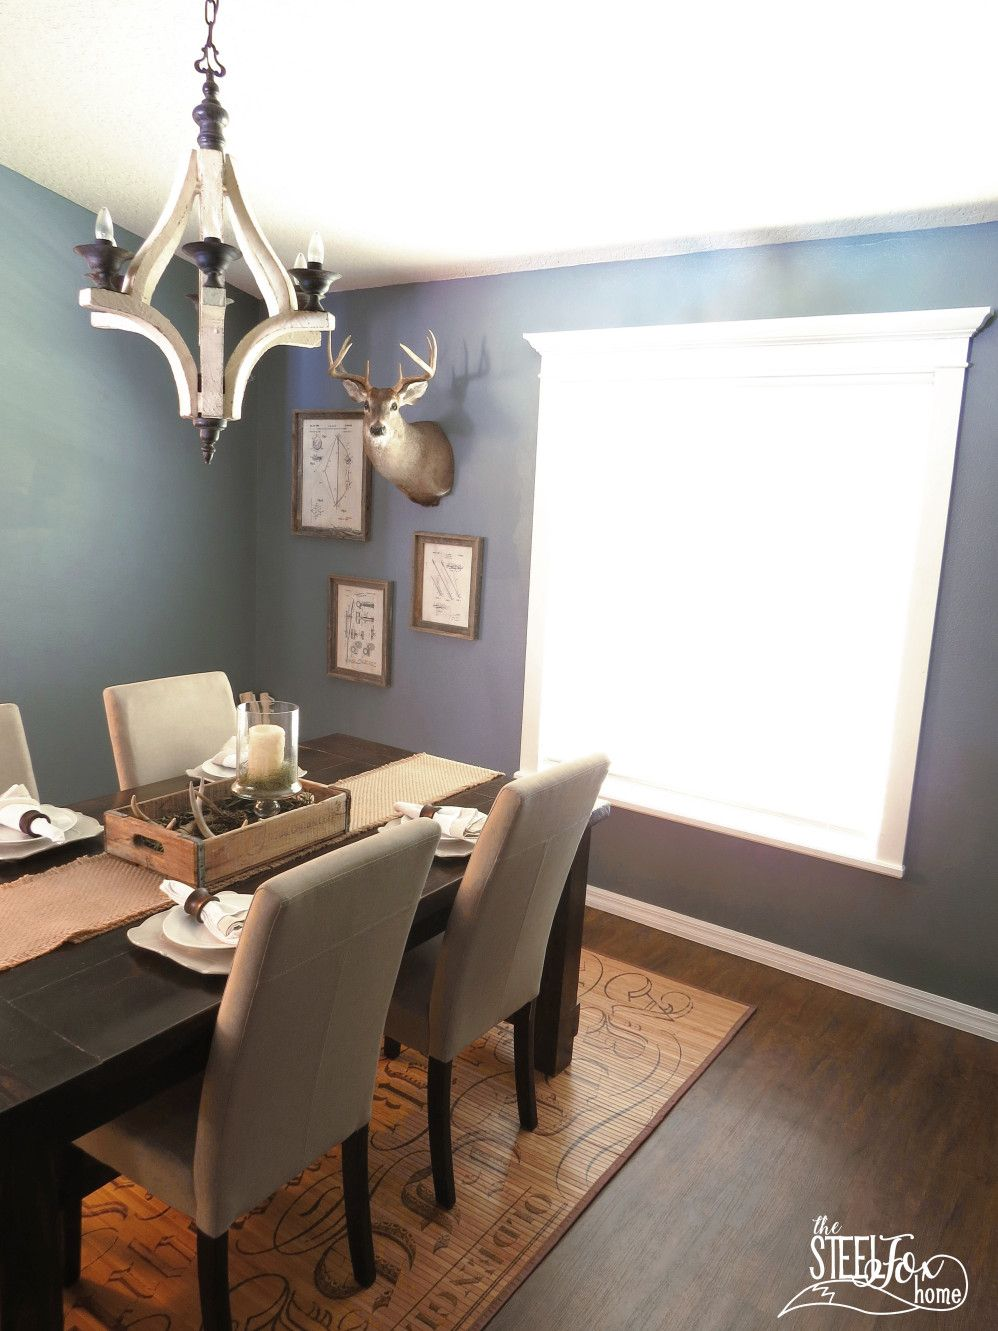 The First Room Is Done In Our Farmhouse Style Fixer Upper Dining Renovation Reveal